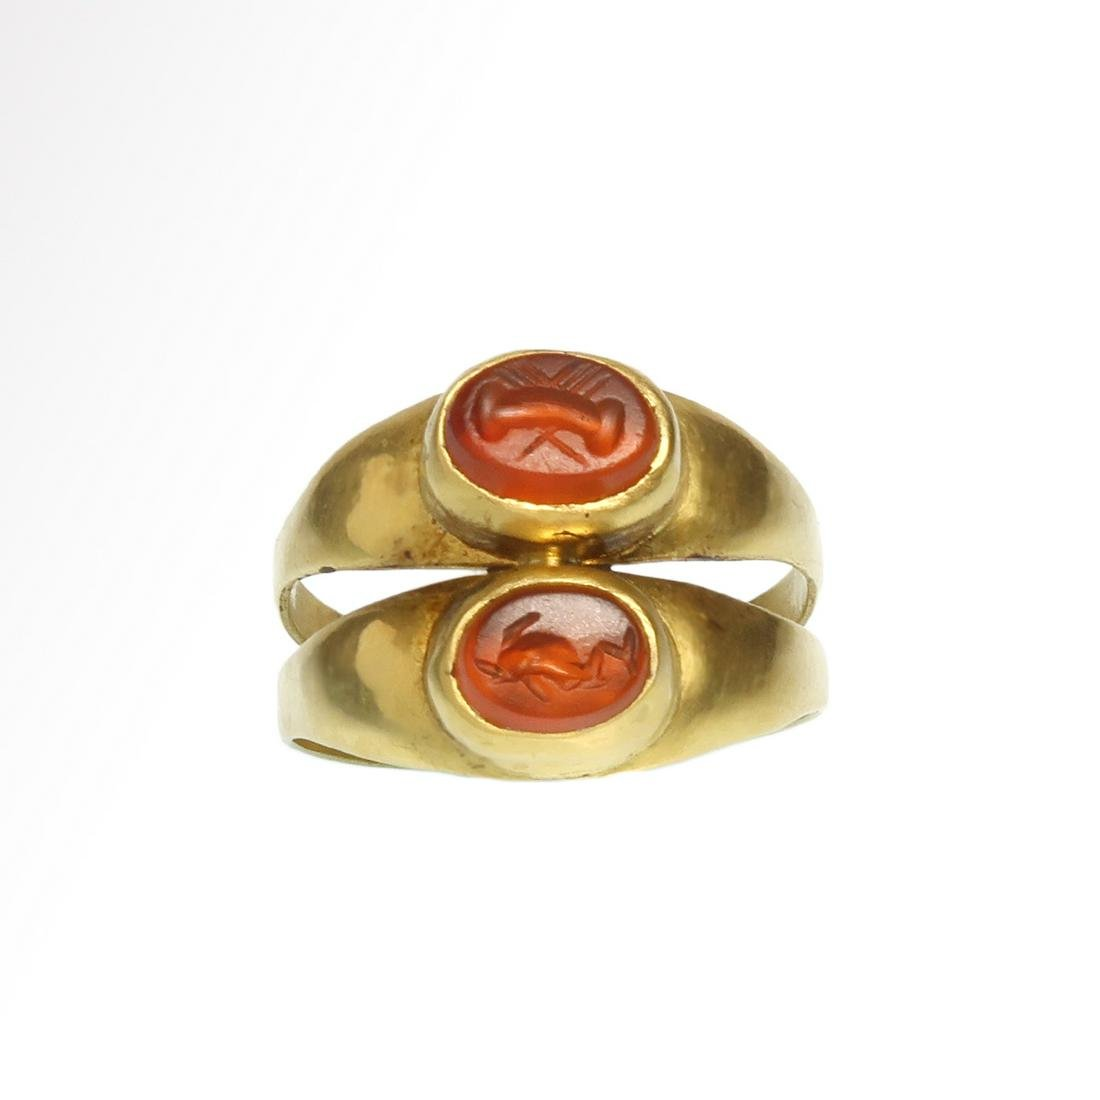 Roman Double Ring with Cornelian Intaglios of a Dolphin